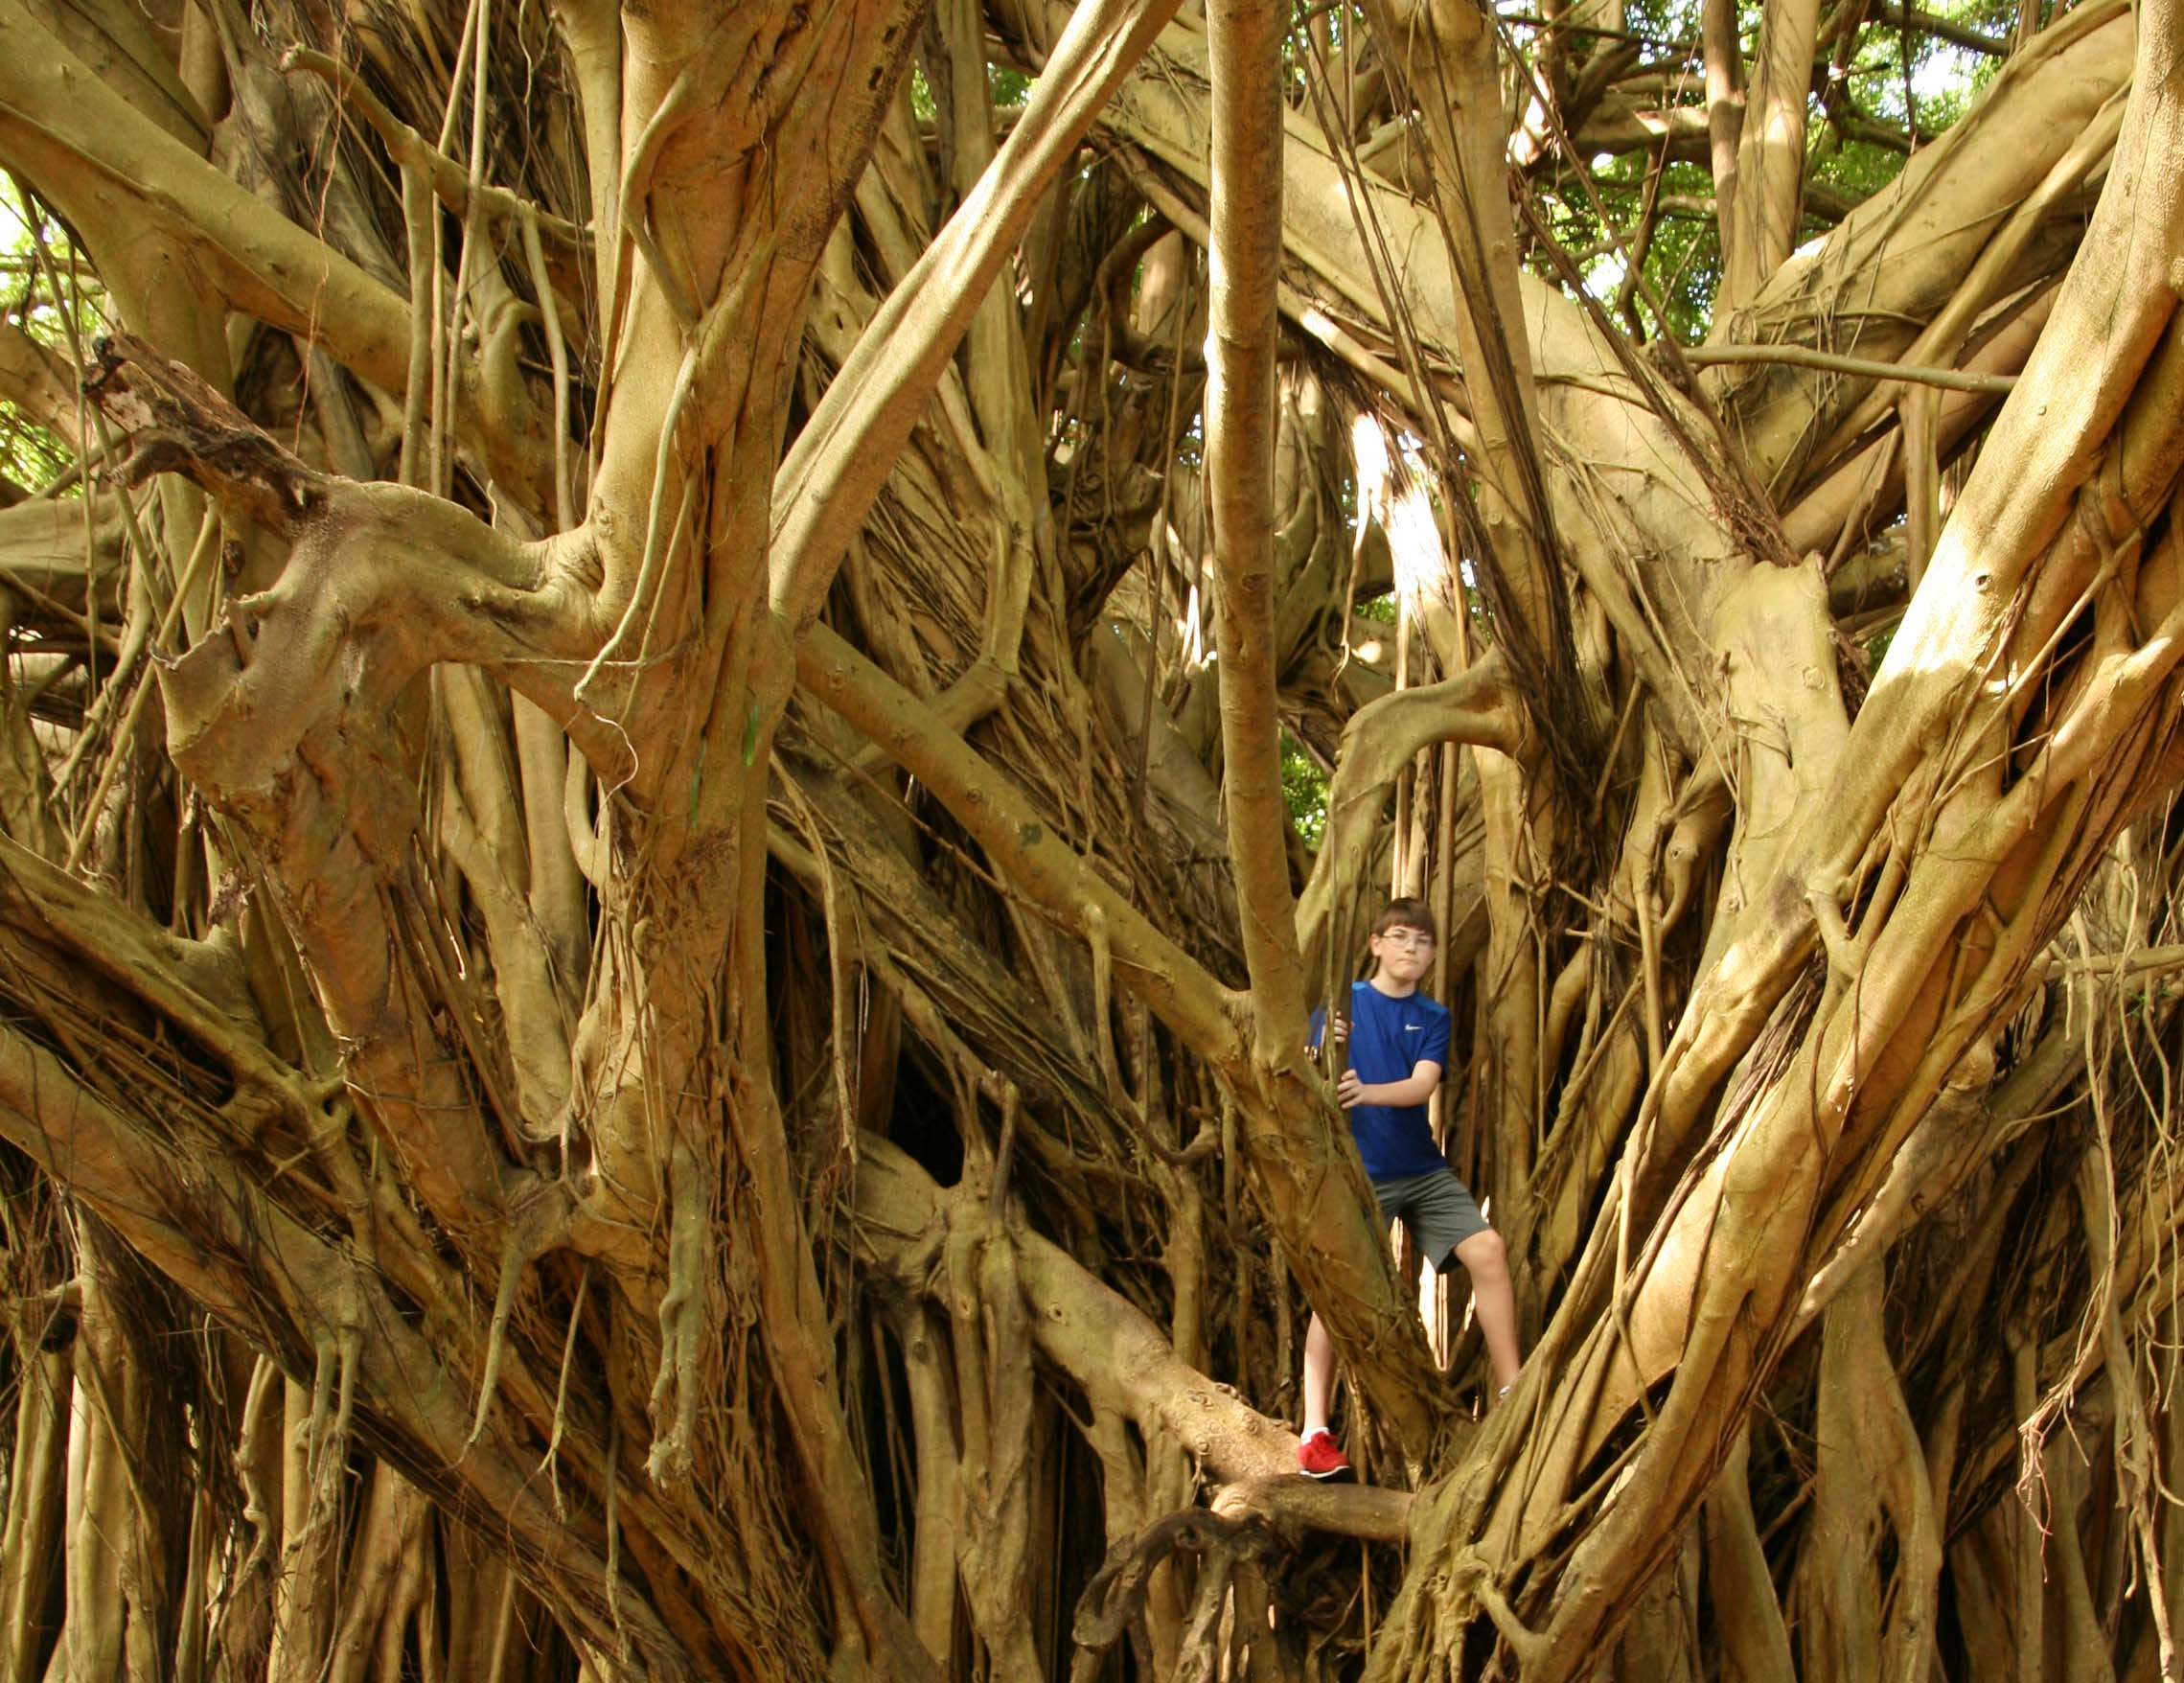 What Can You Do On Hawaii's Big Island With Kids: climb Banyan Tree at Rainbow Falls